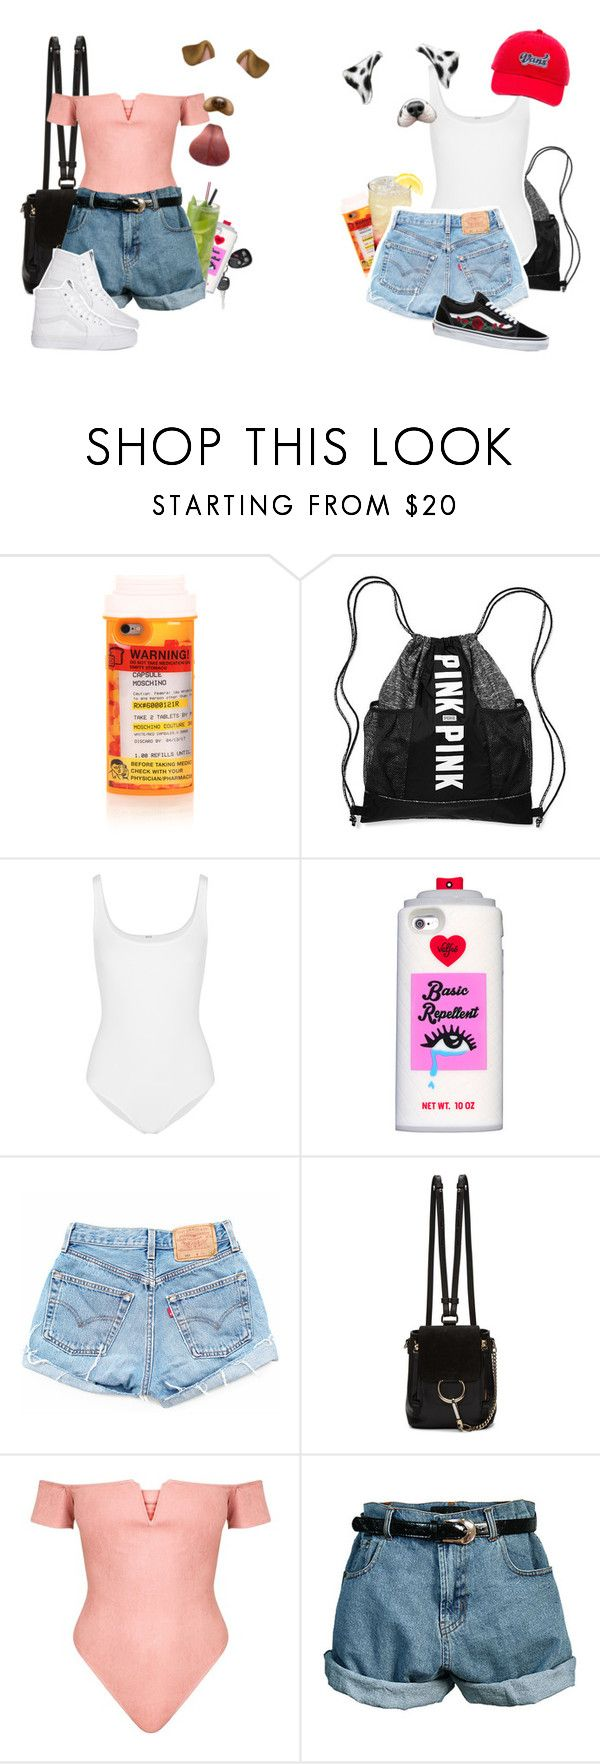 """Out and About"" by bears2026 ❤ liked on Polyvore featuring Moschino, Wolford, Valfré, Chloé, Retrò and Vans"